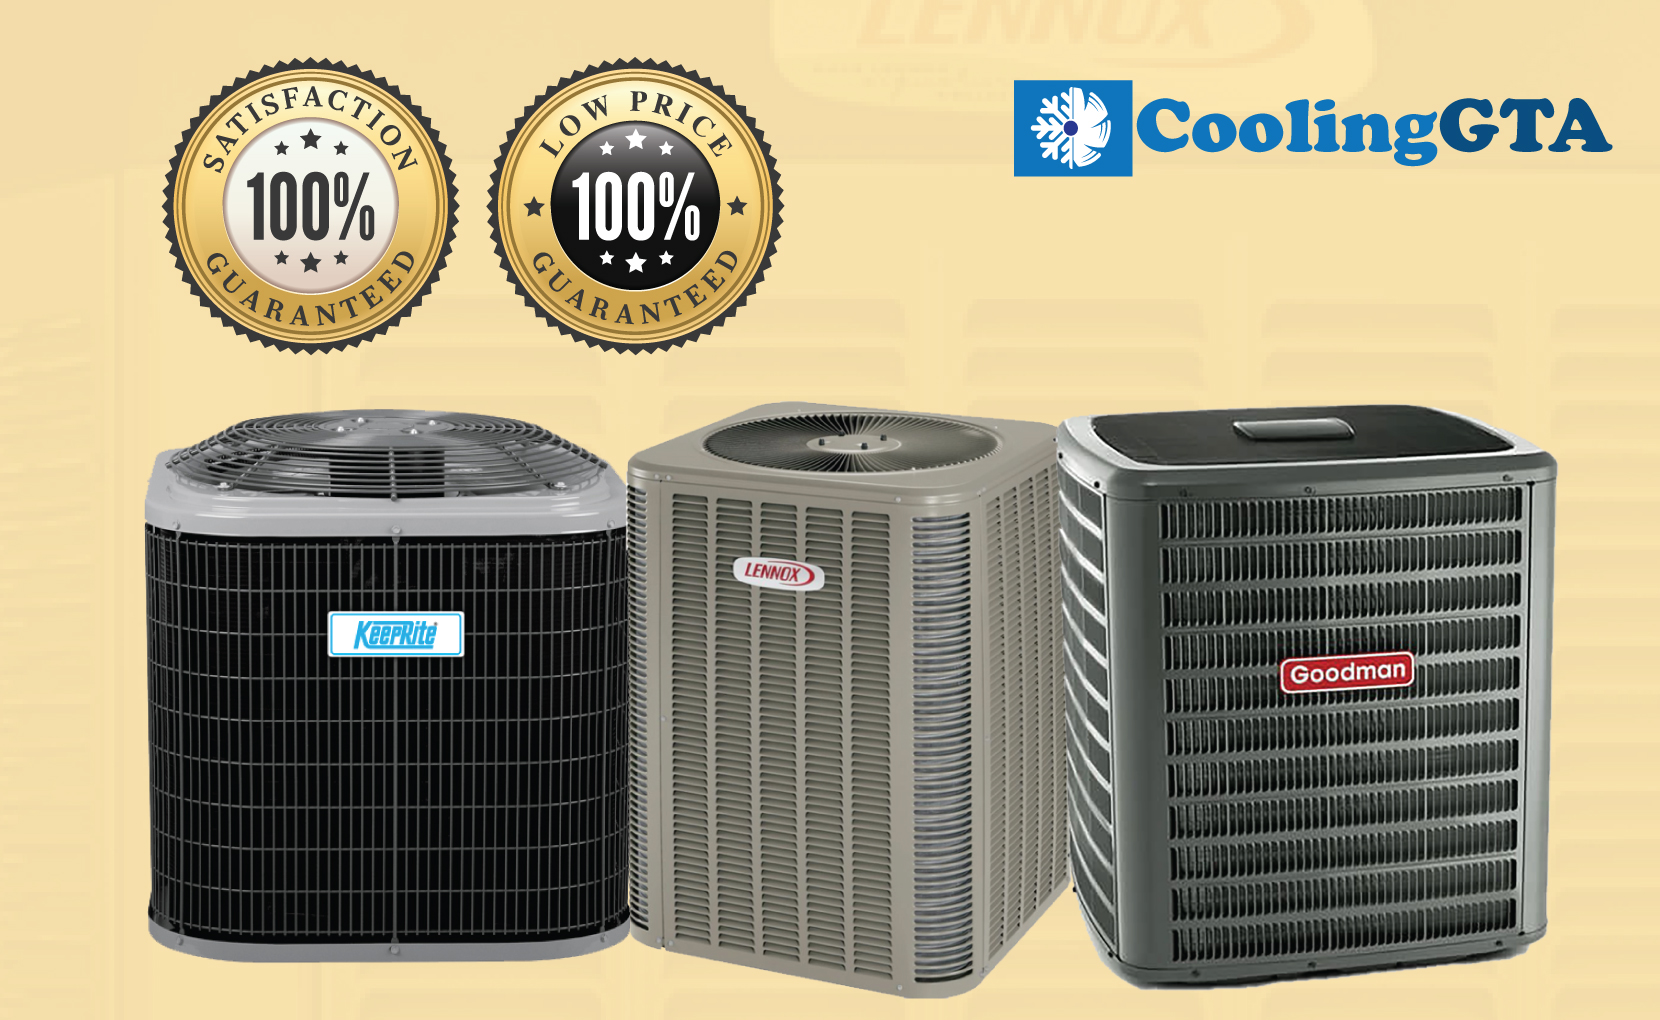 furnace-coolinggta-keeprite-goodman-lennox-carrier